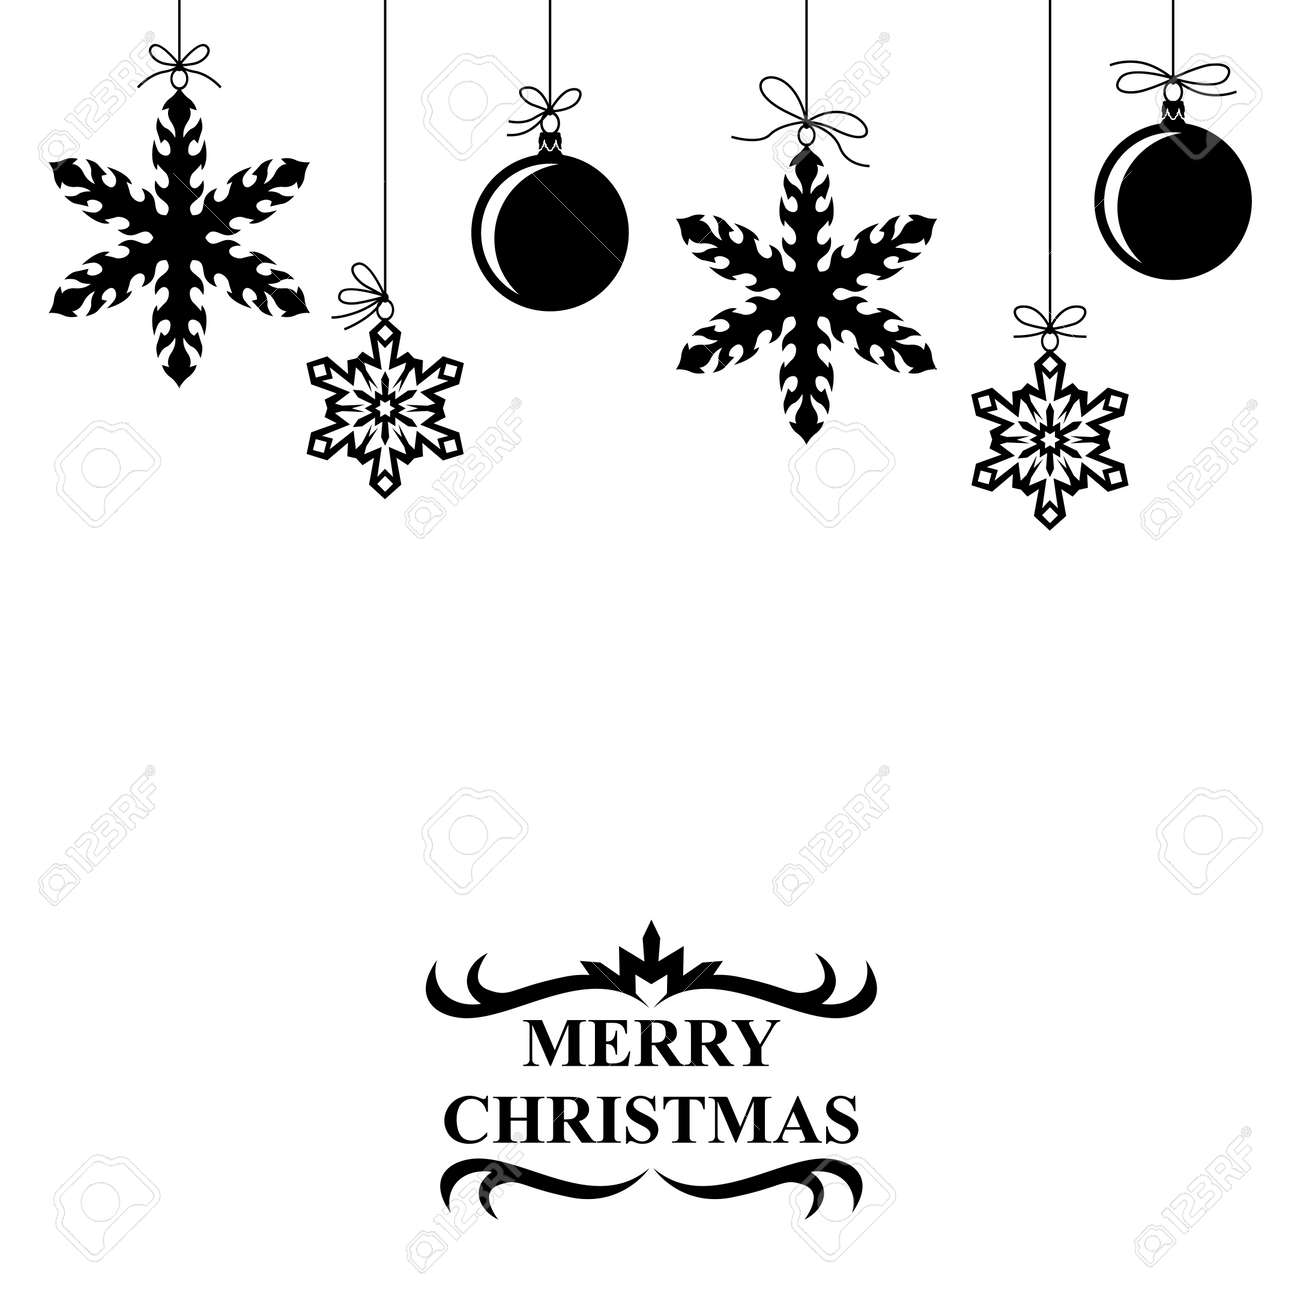 Hanging Christmas Ornaments Silhouette.Vector Illustrations Of Silhouette Of Hanging Christmas Balls